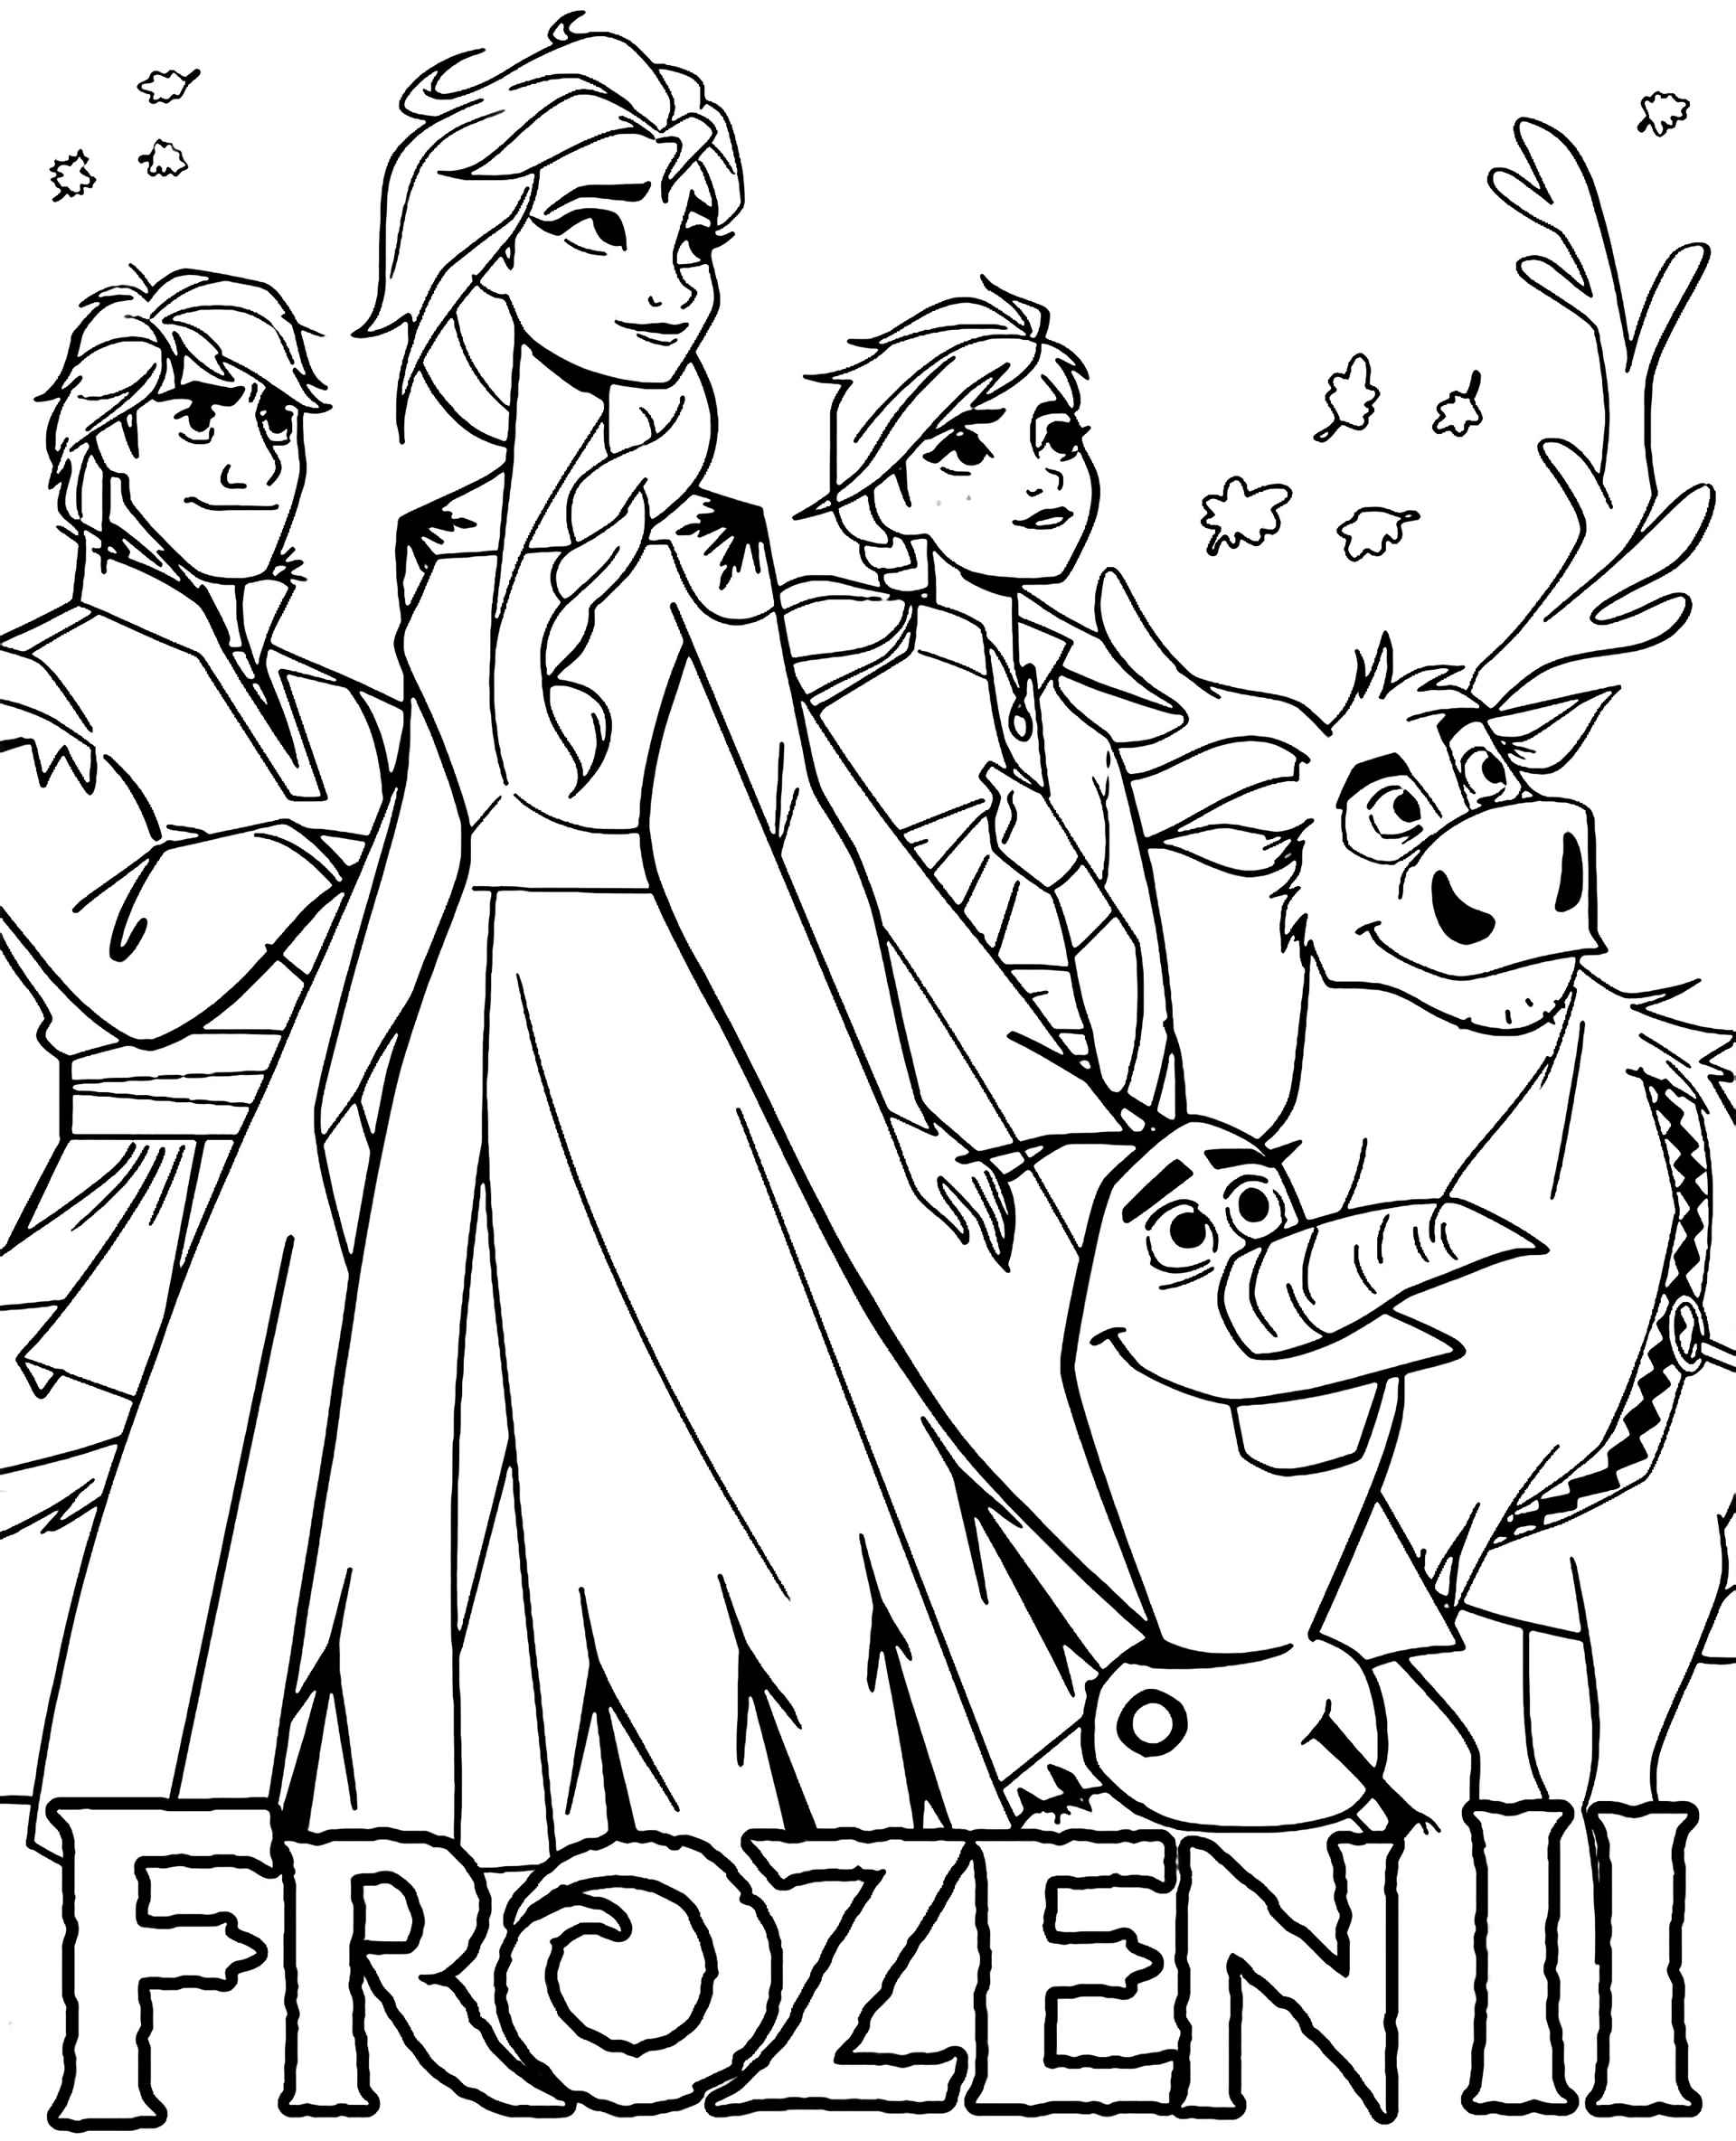 Frozen 2 Cover Coloring Page